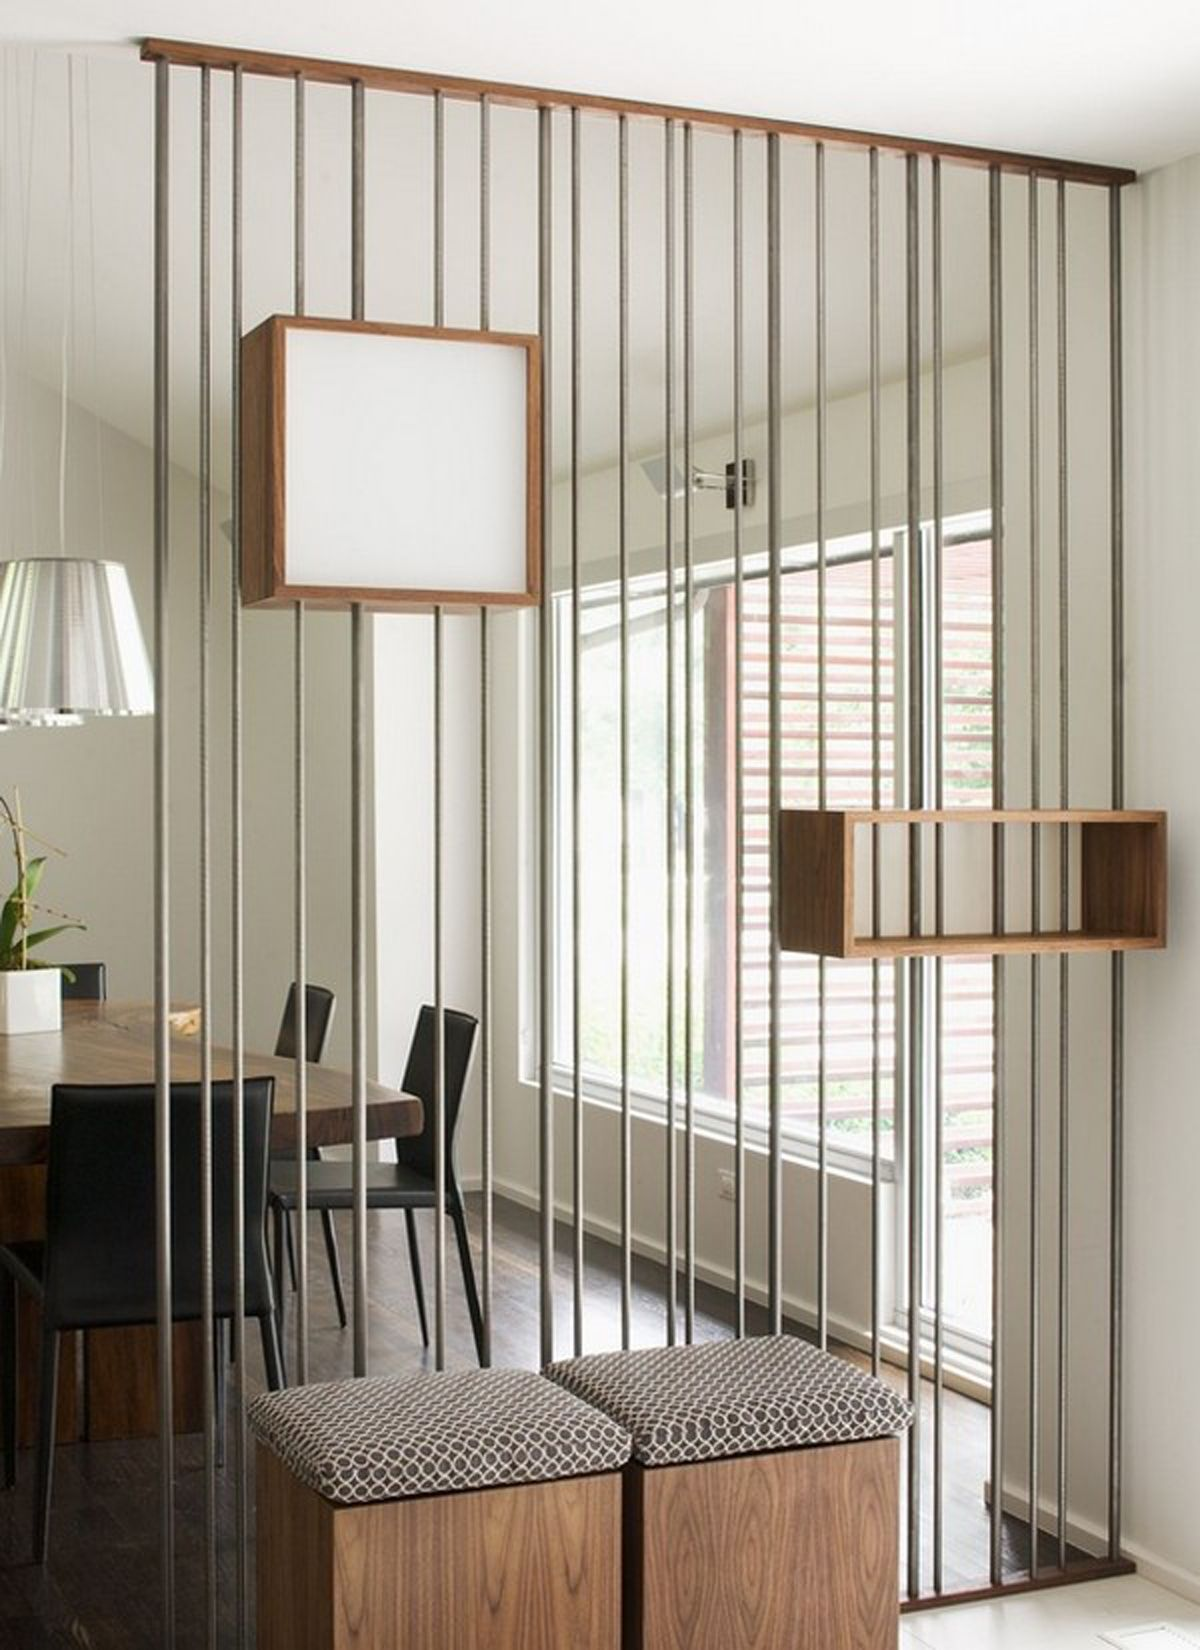 we can combine with wooden material to get these classy home  - decoration beautiful midcentury modern house foyer decoration withoriginal modern half wall room dividers by steel rod screen room dividerdesign ideas